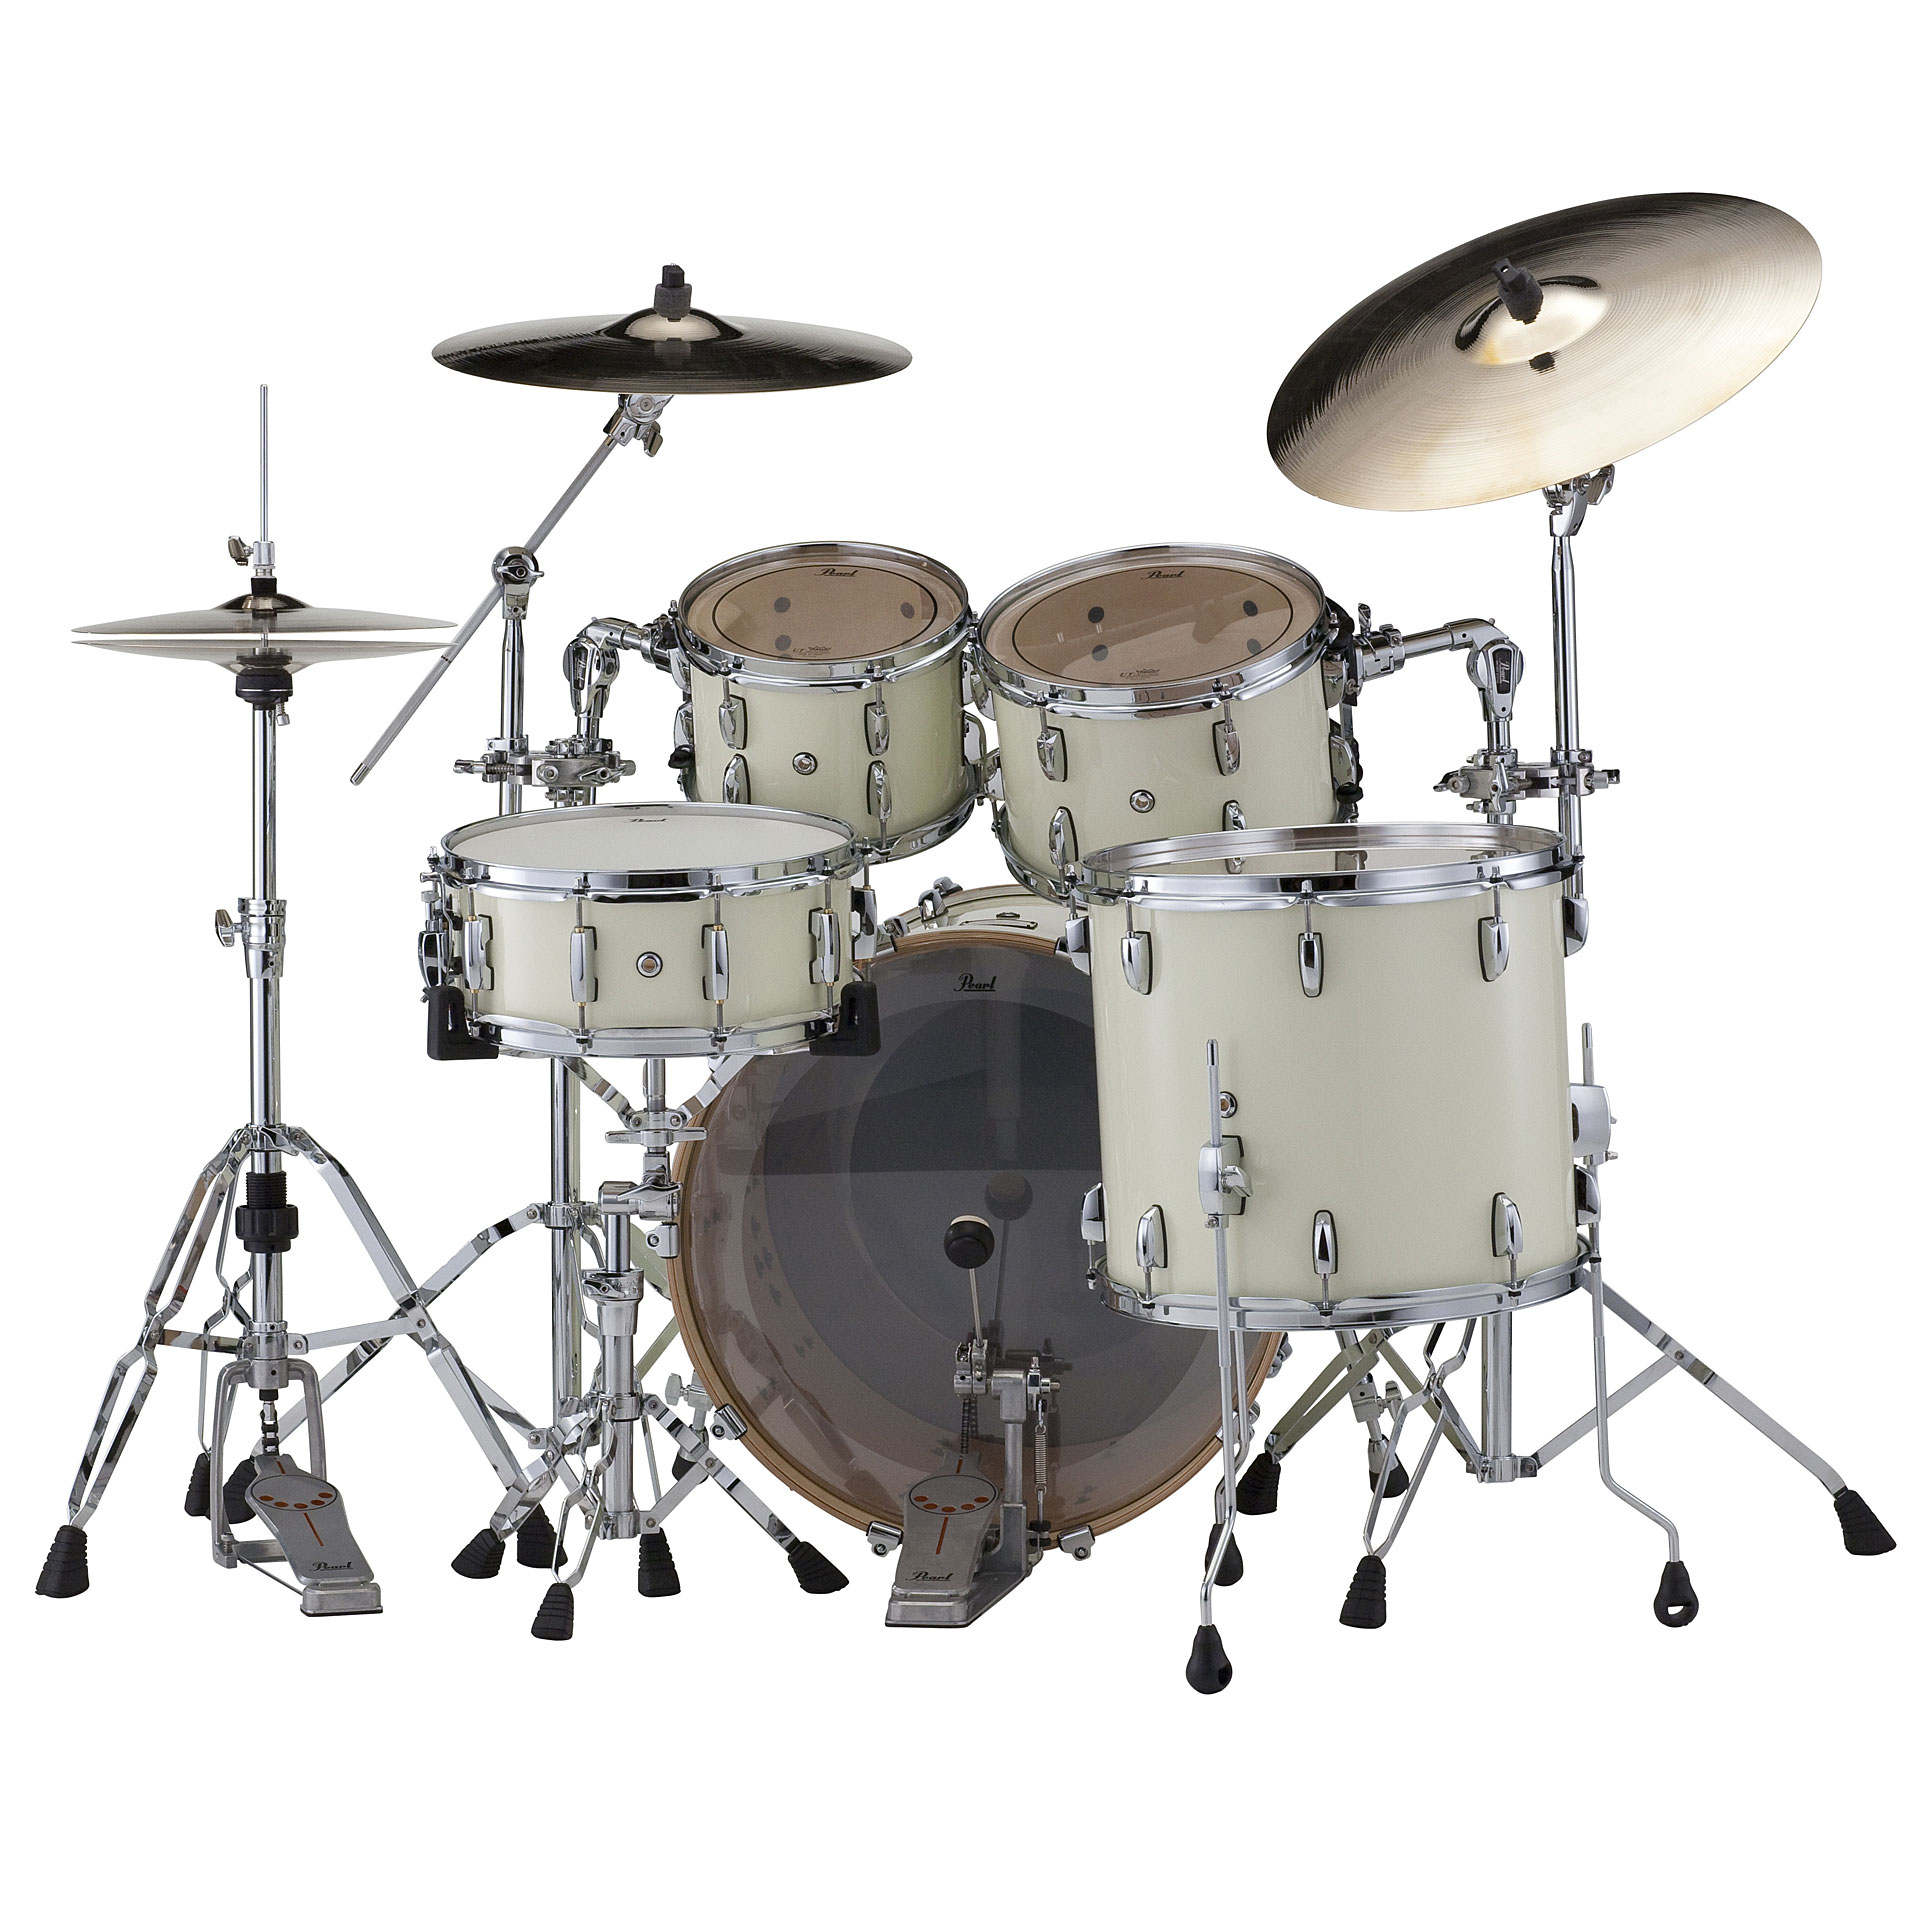 Pearl session studio classic ssc924xup c106 drum kit for Classic house drums